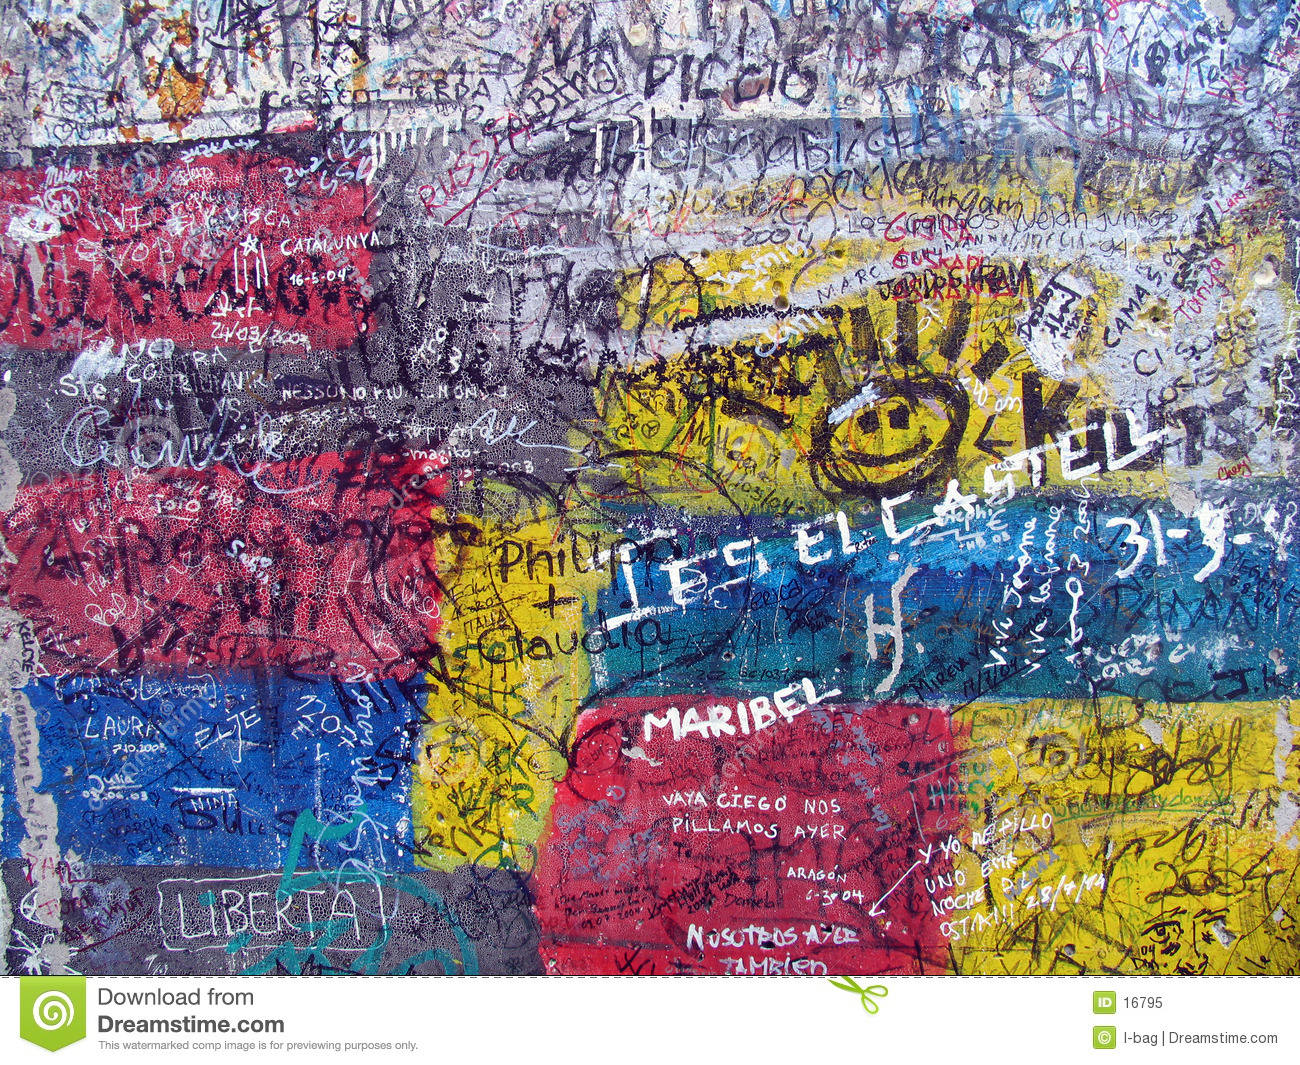 Berlin wall broken clipart.